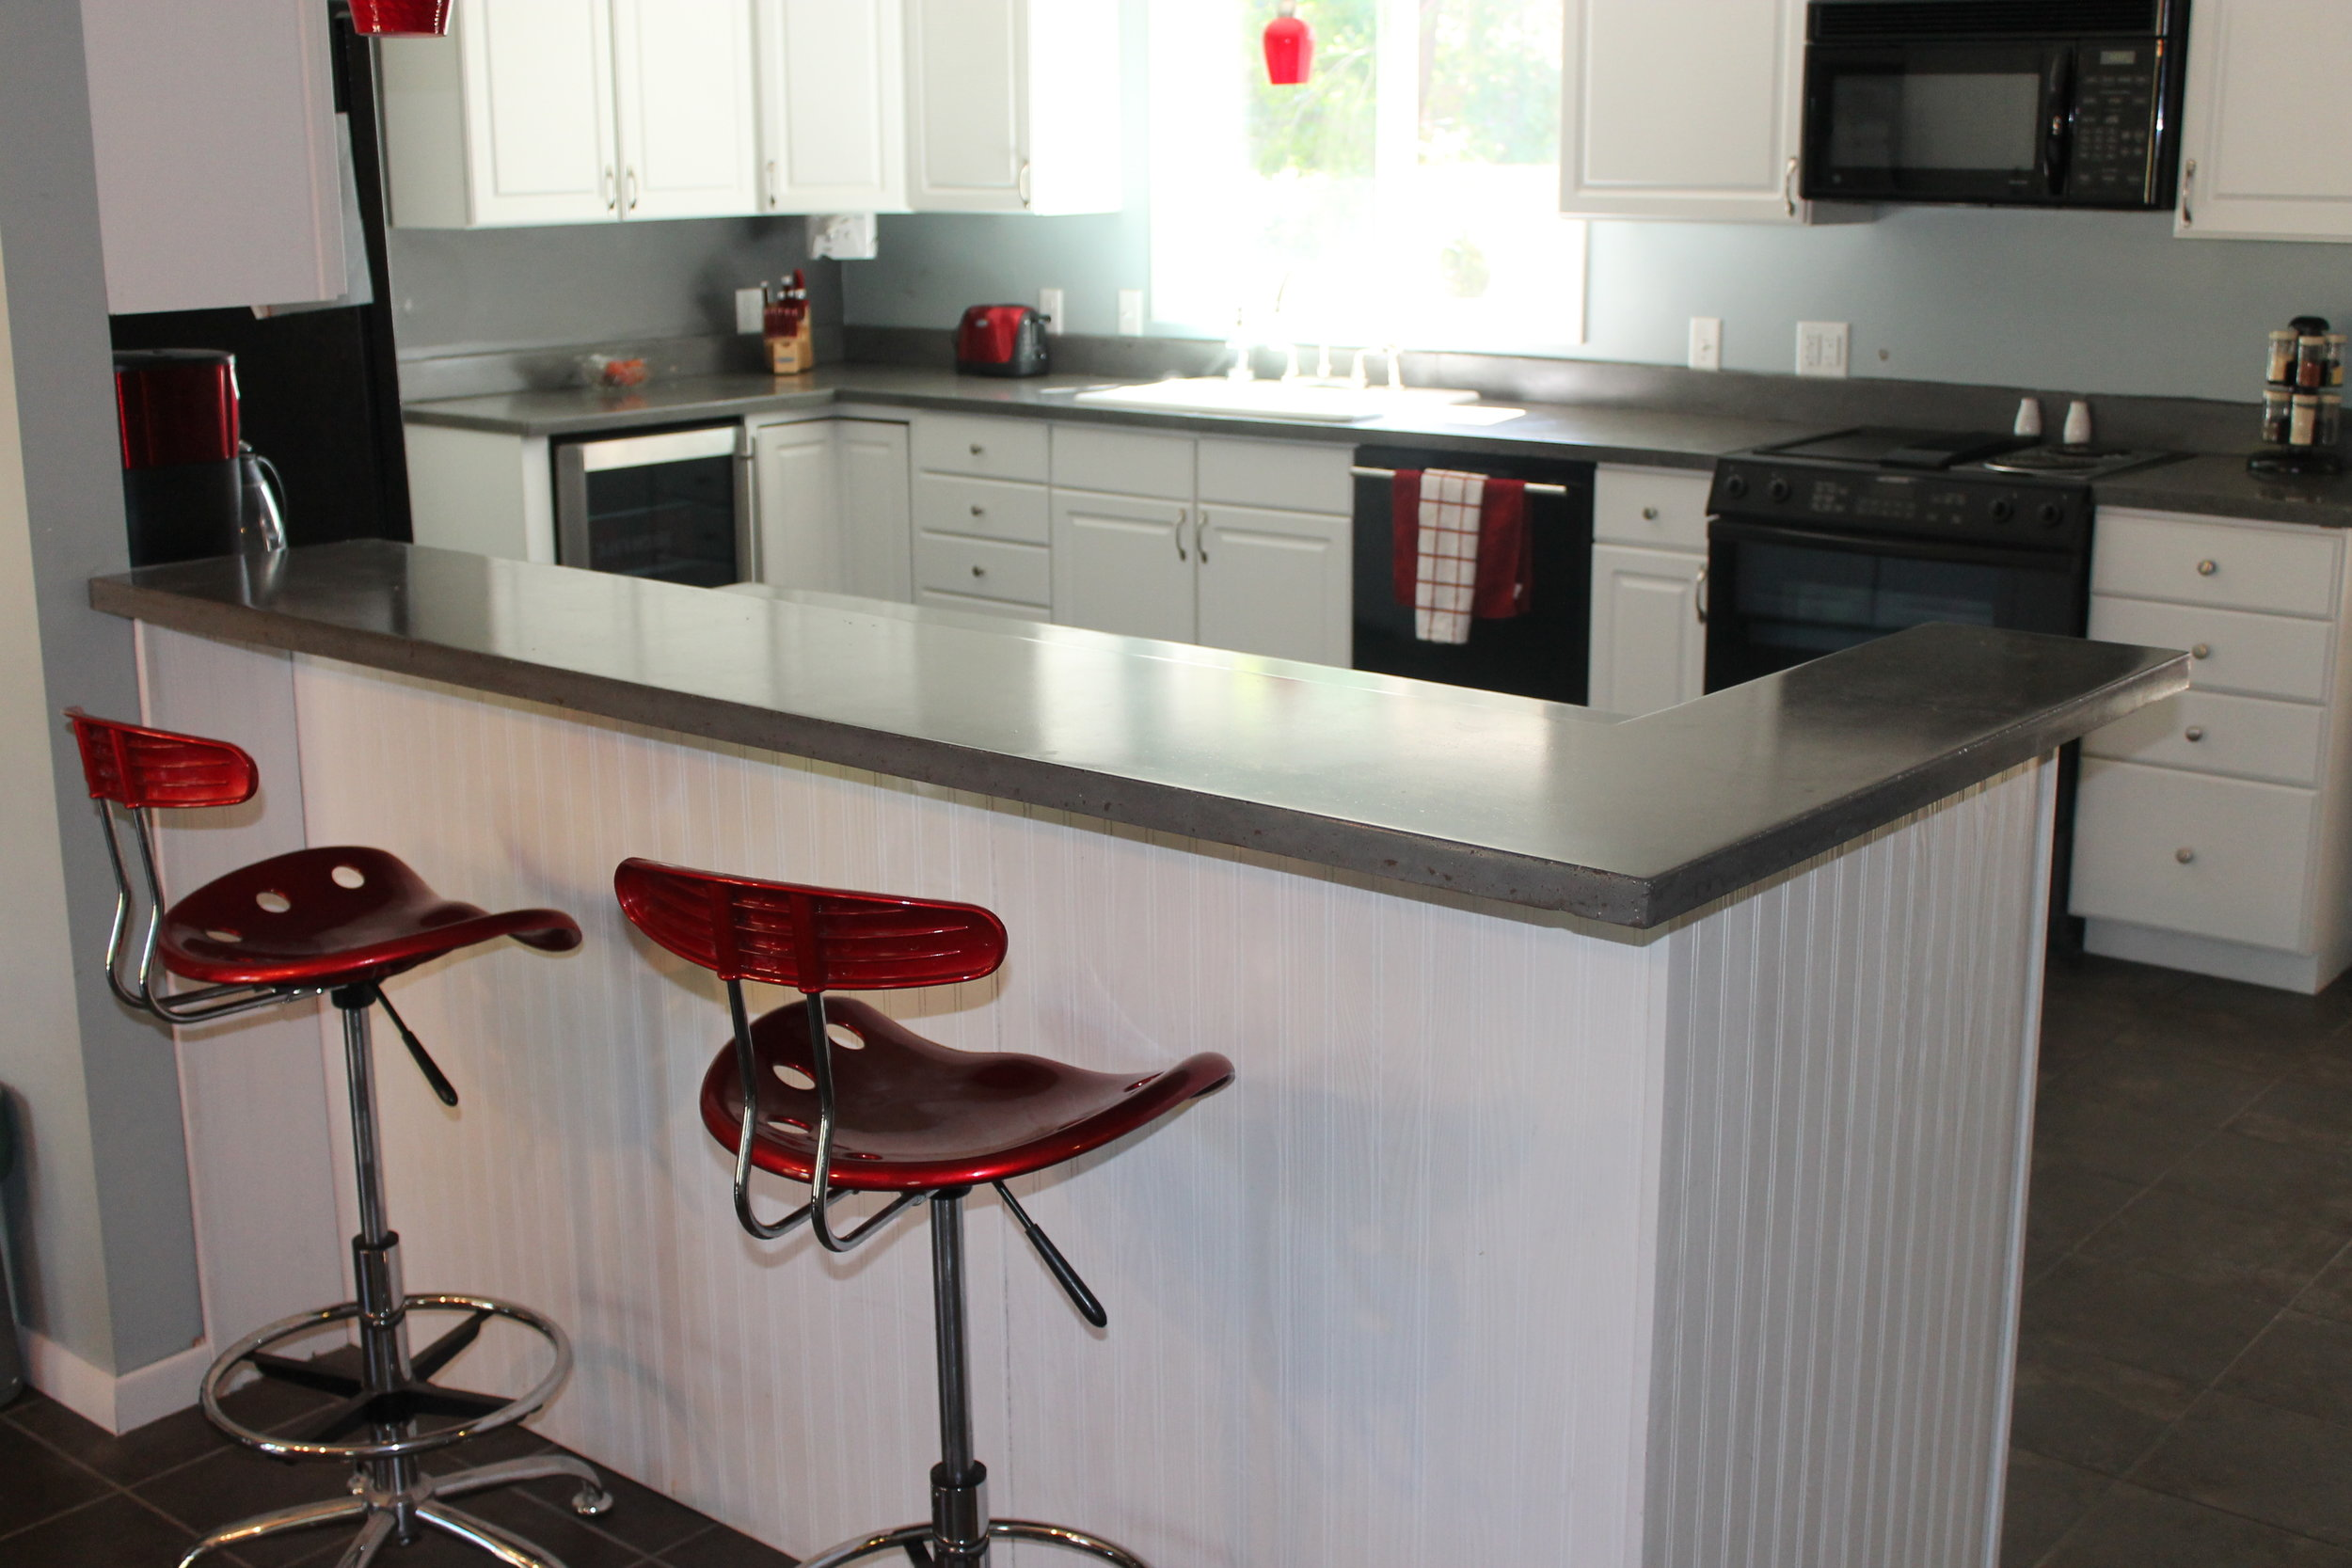 Polished concrete kitchen countertops and island